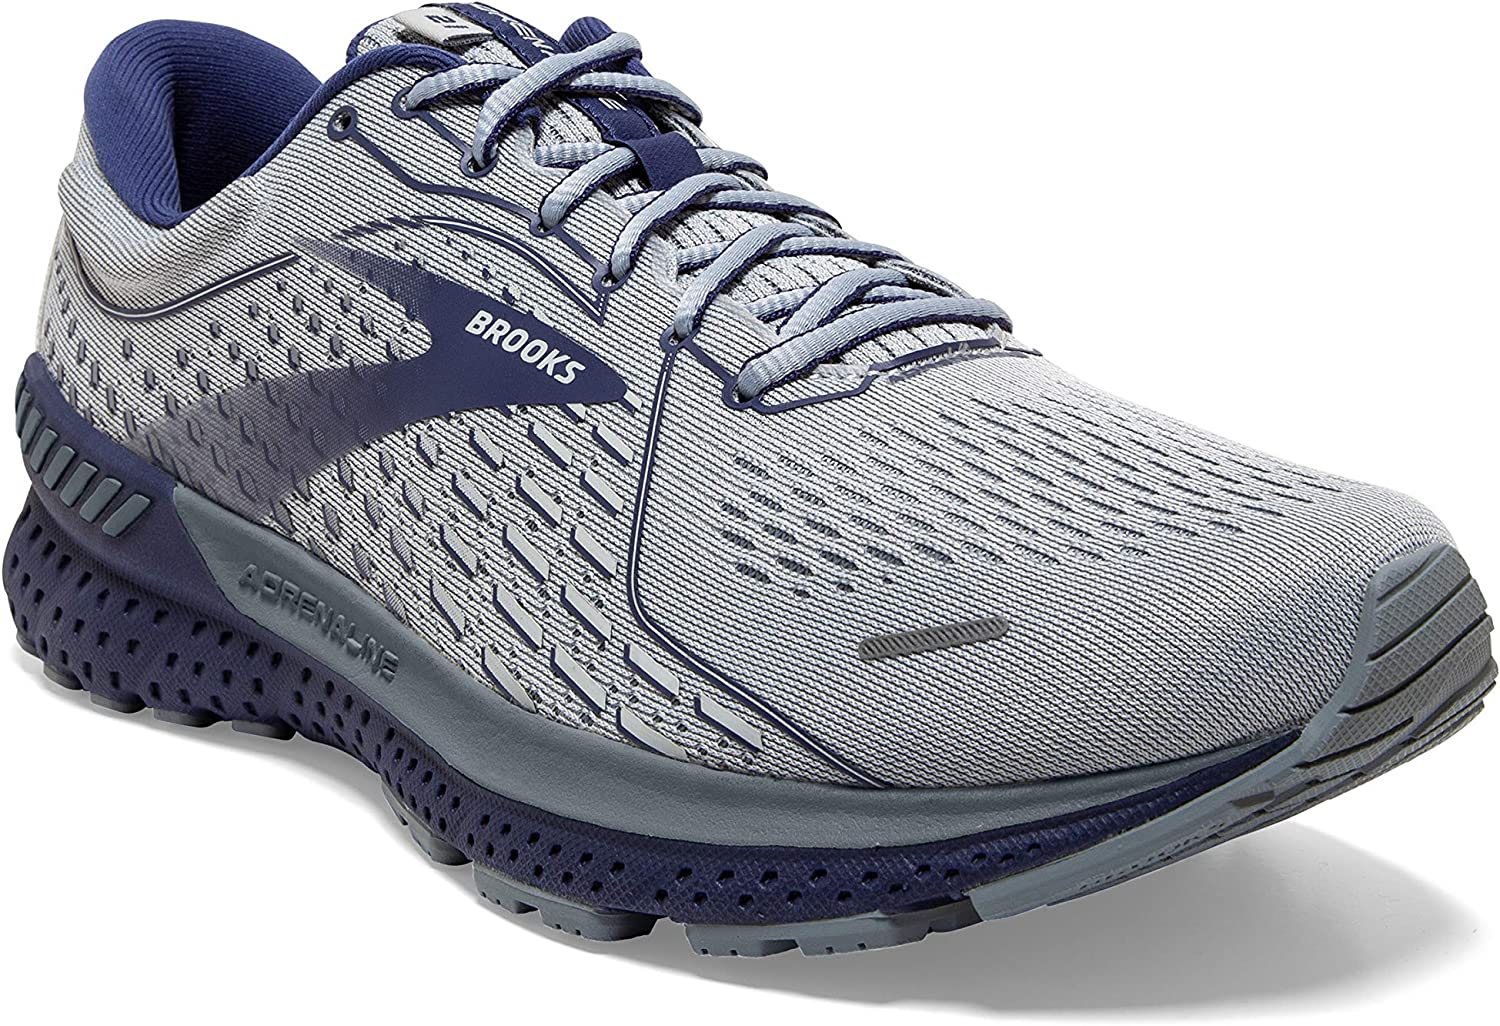 Brooks Men's Adrenaline 21 Limited time cheap sale GTS shopping